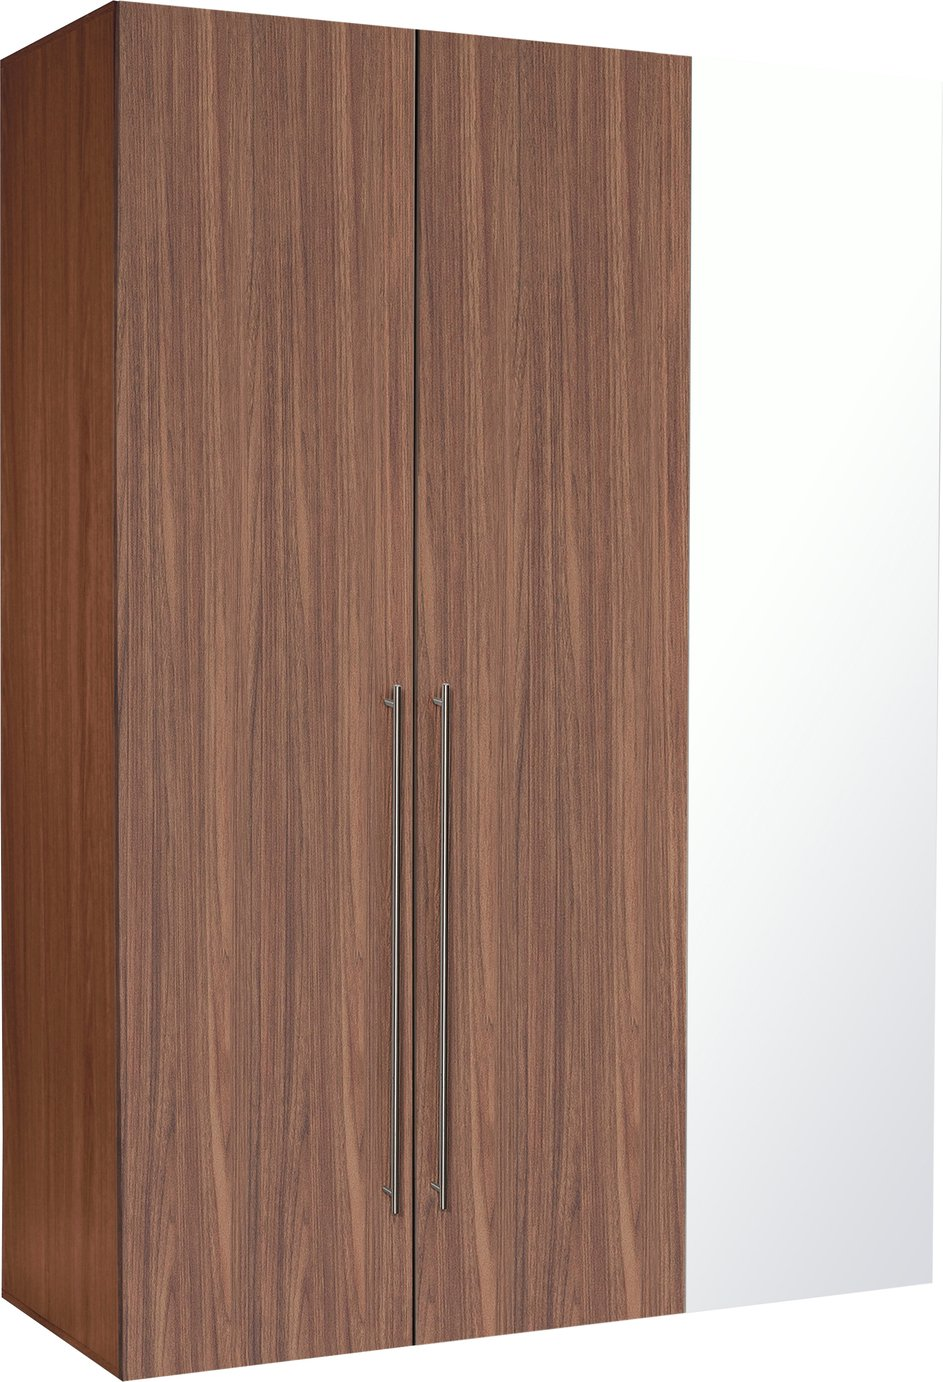 Hygena Atlas 3 Door Mirrored Tall Wardrobe - Walnut Effect